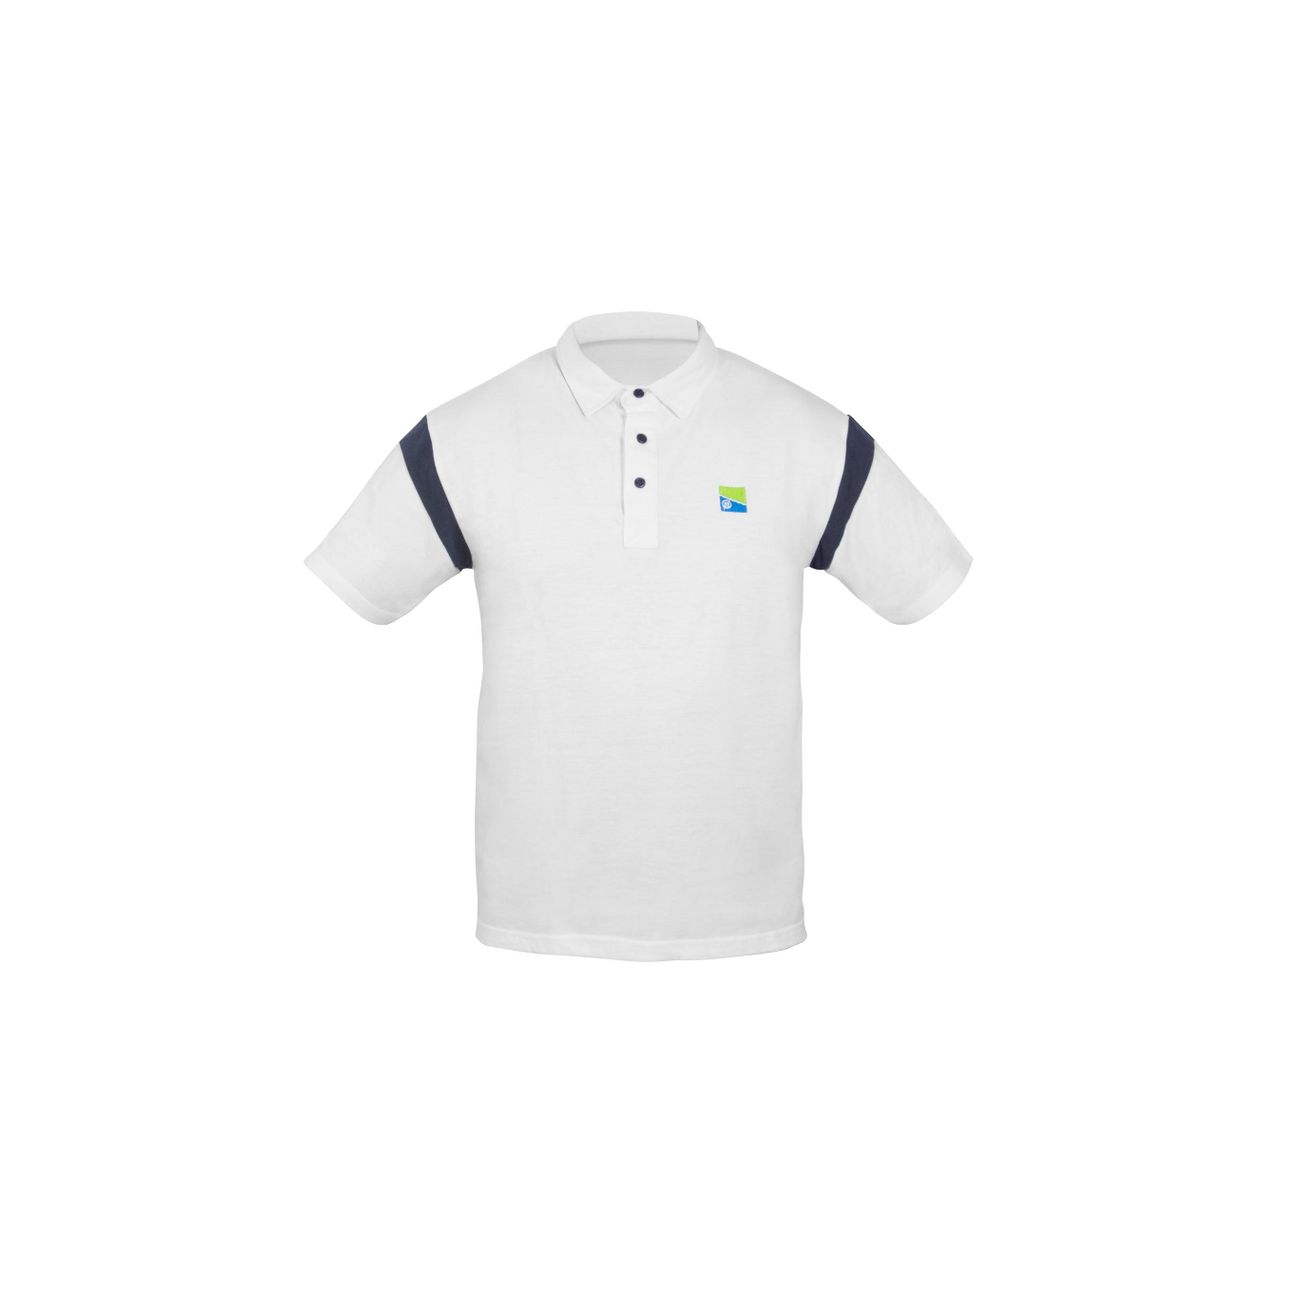 Shirt Adulte Blanc Pêche Polo Preston v80NnOmw